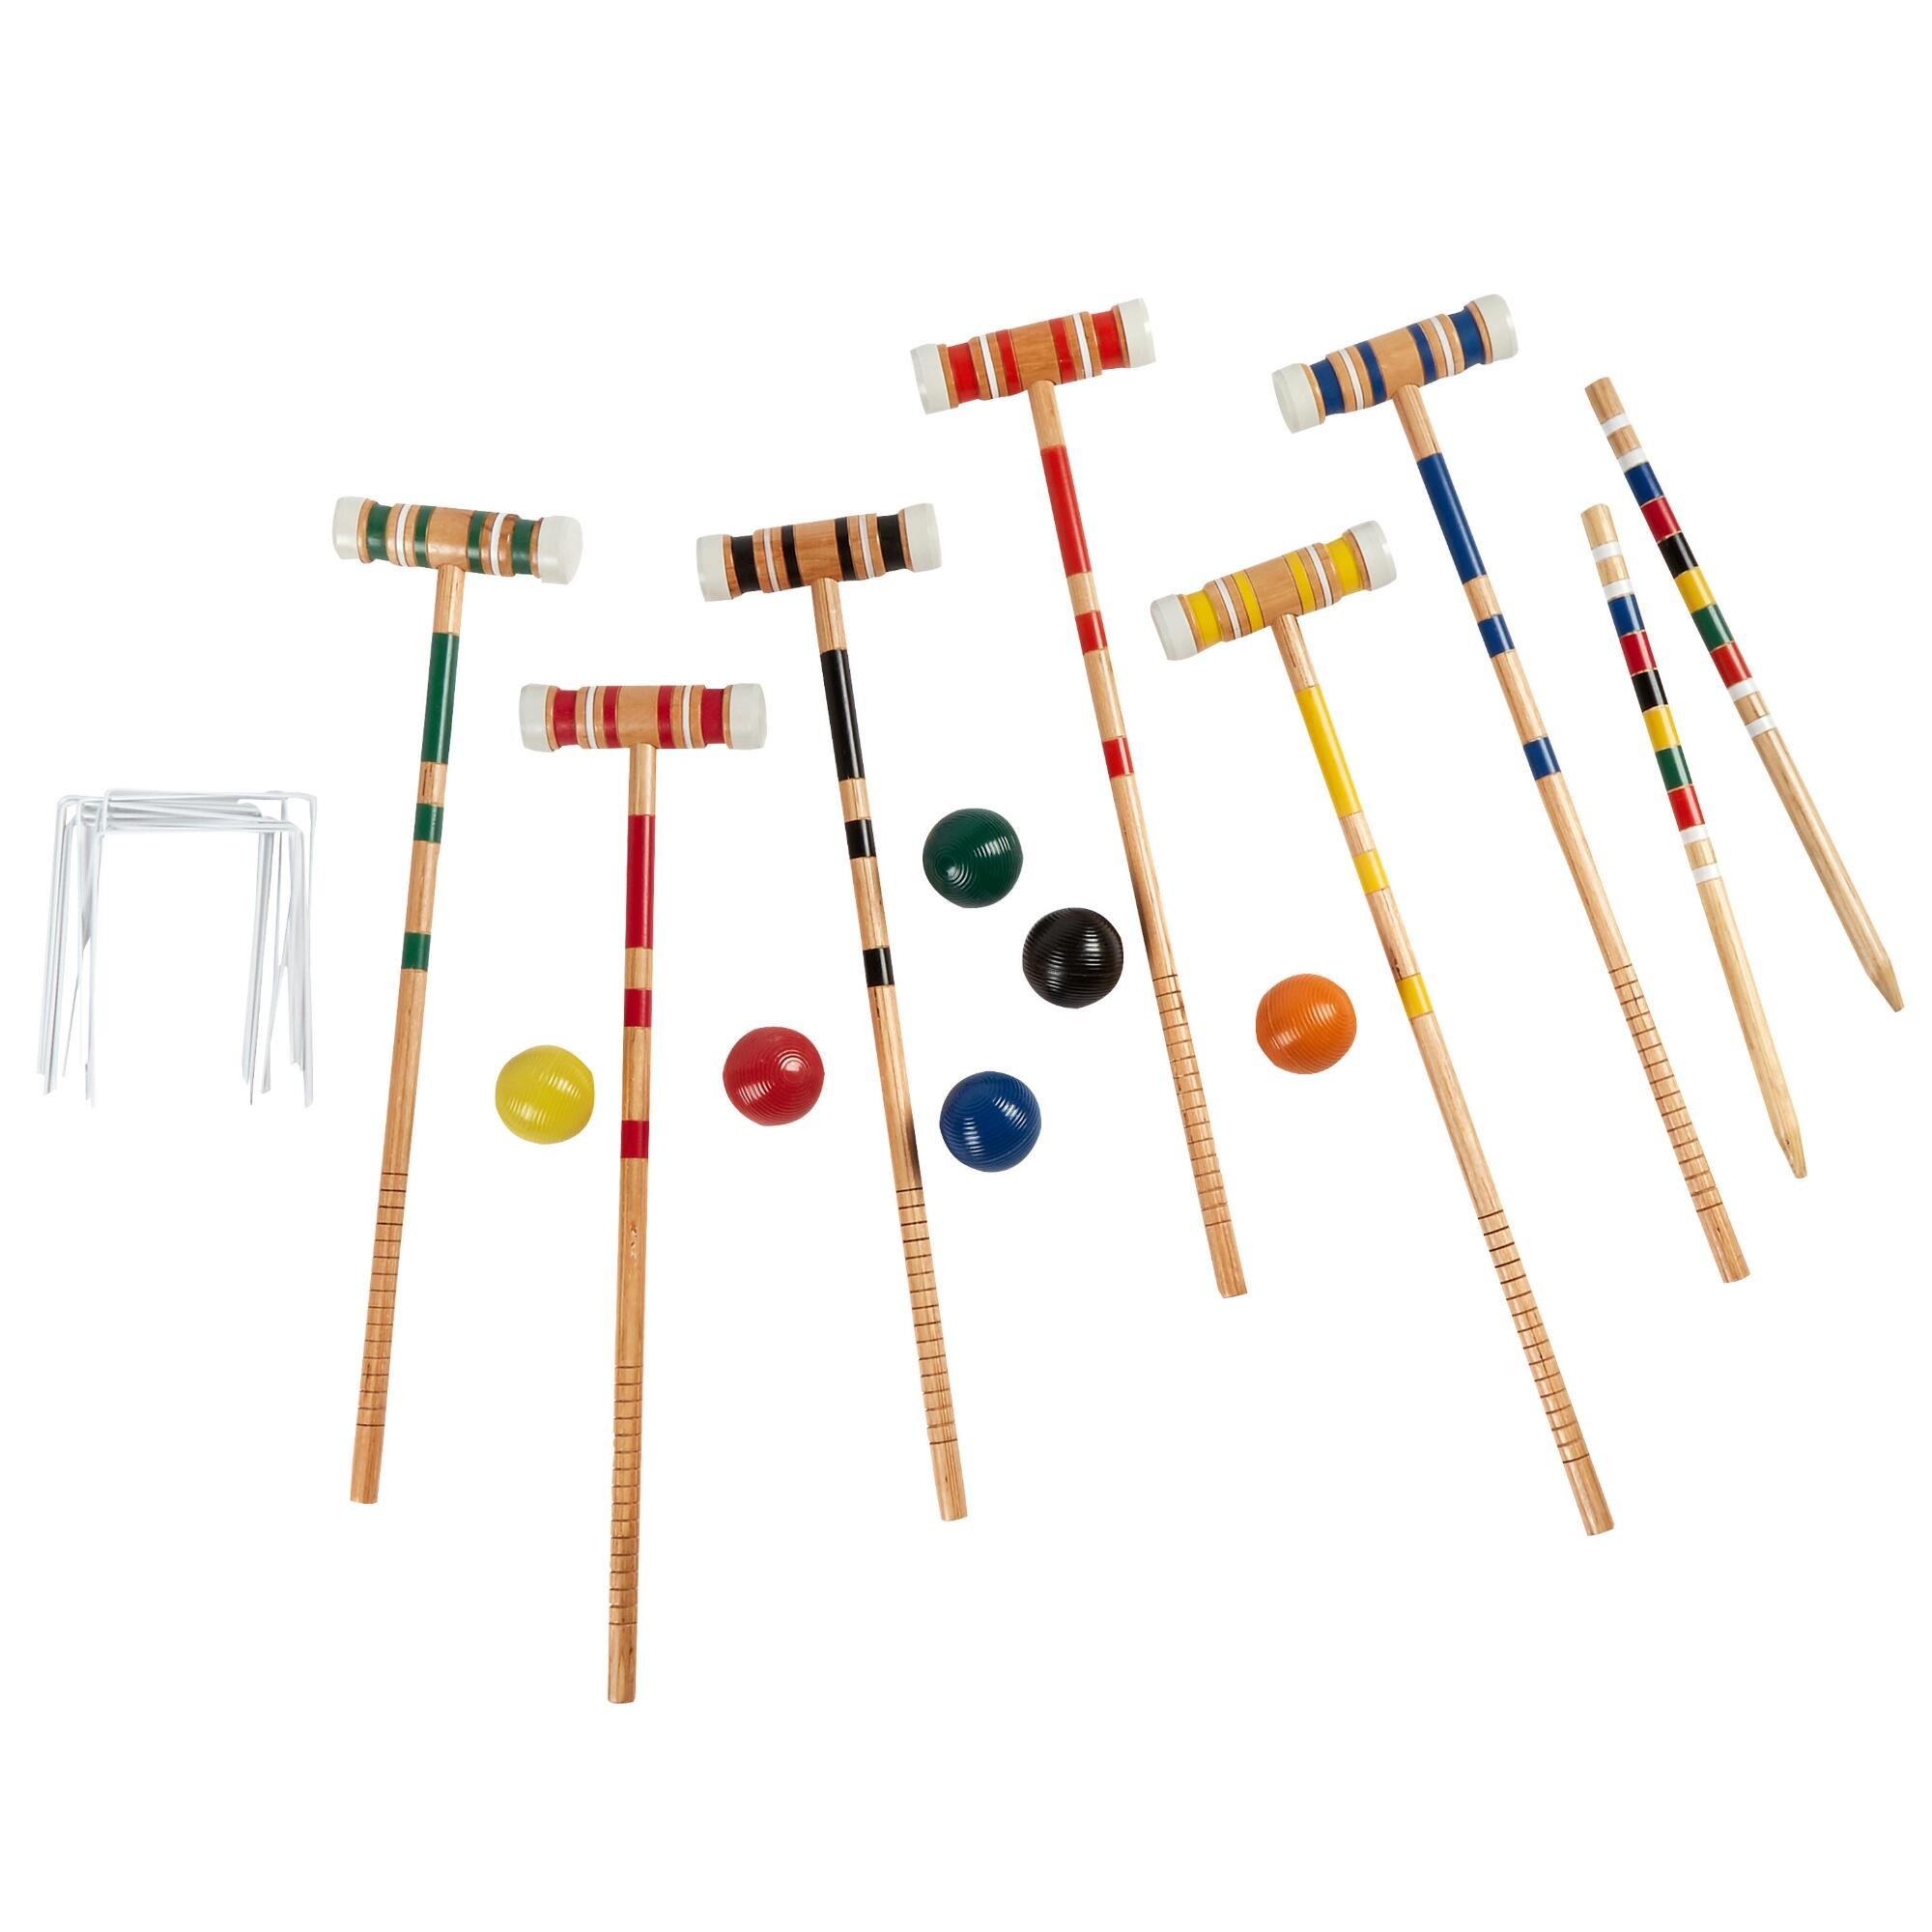 Parkside Croquet Set with Carrying Case by Parkside